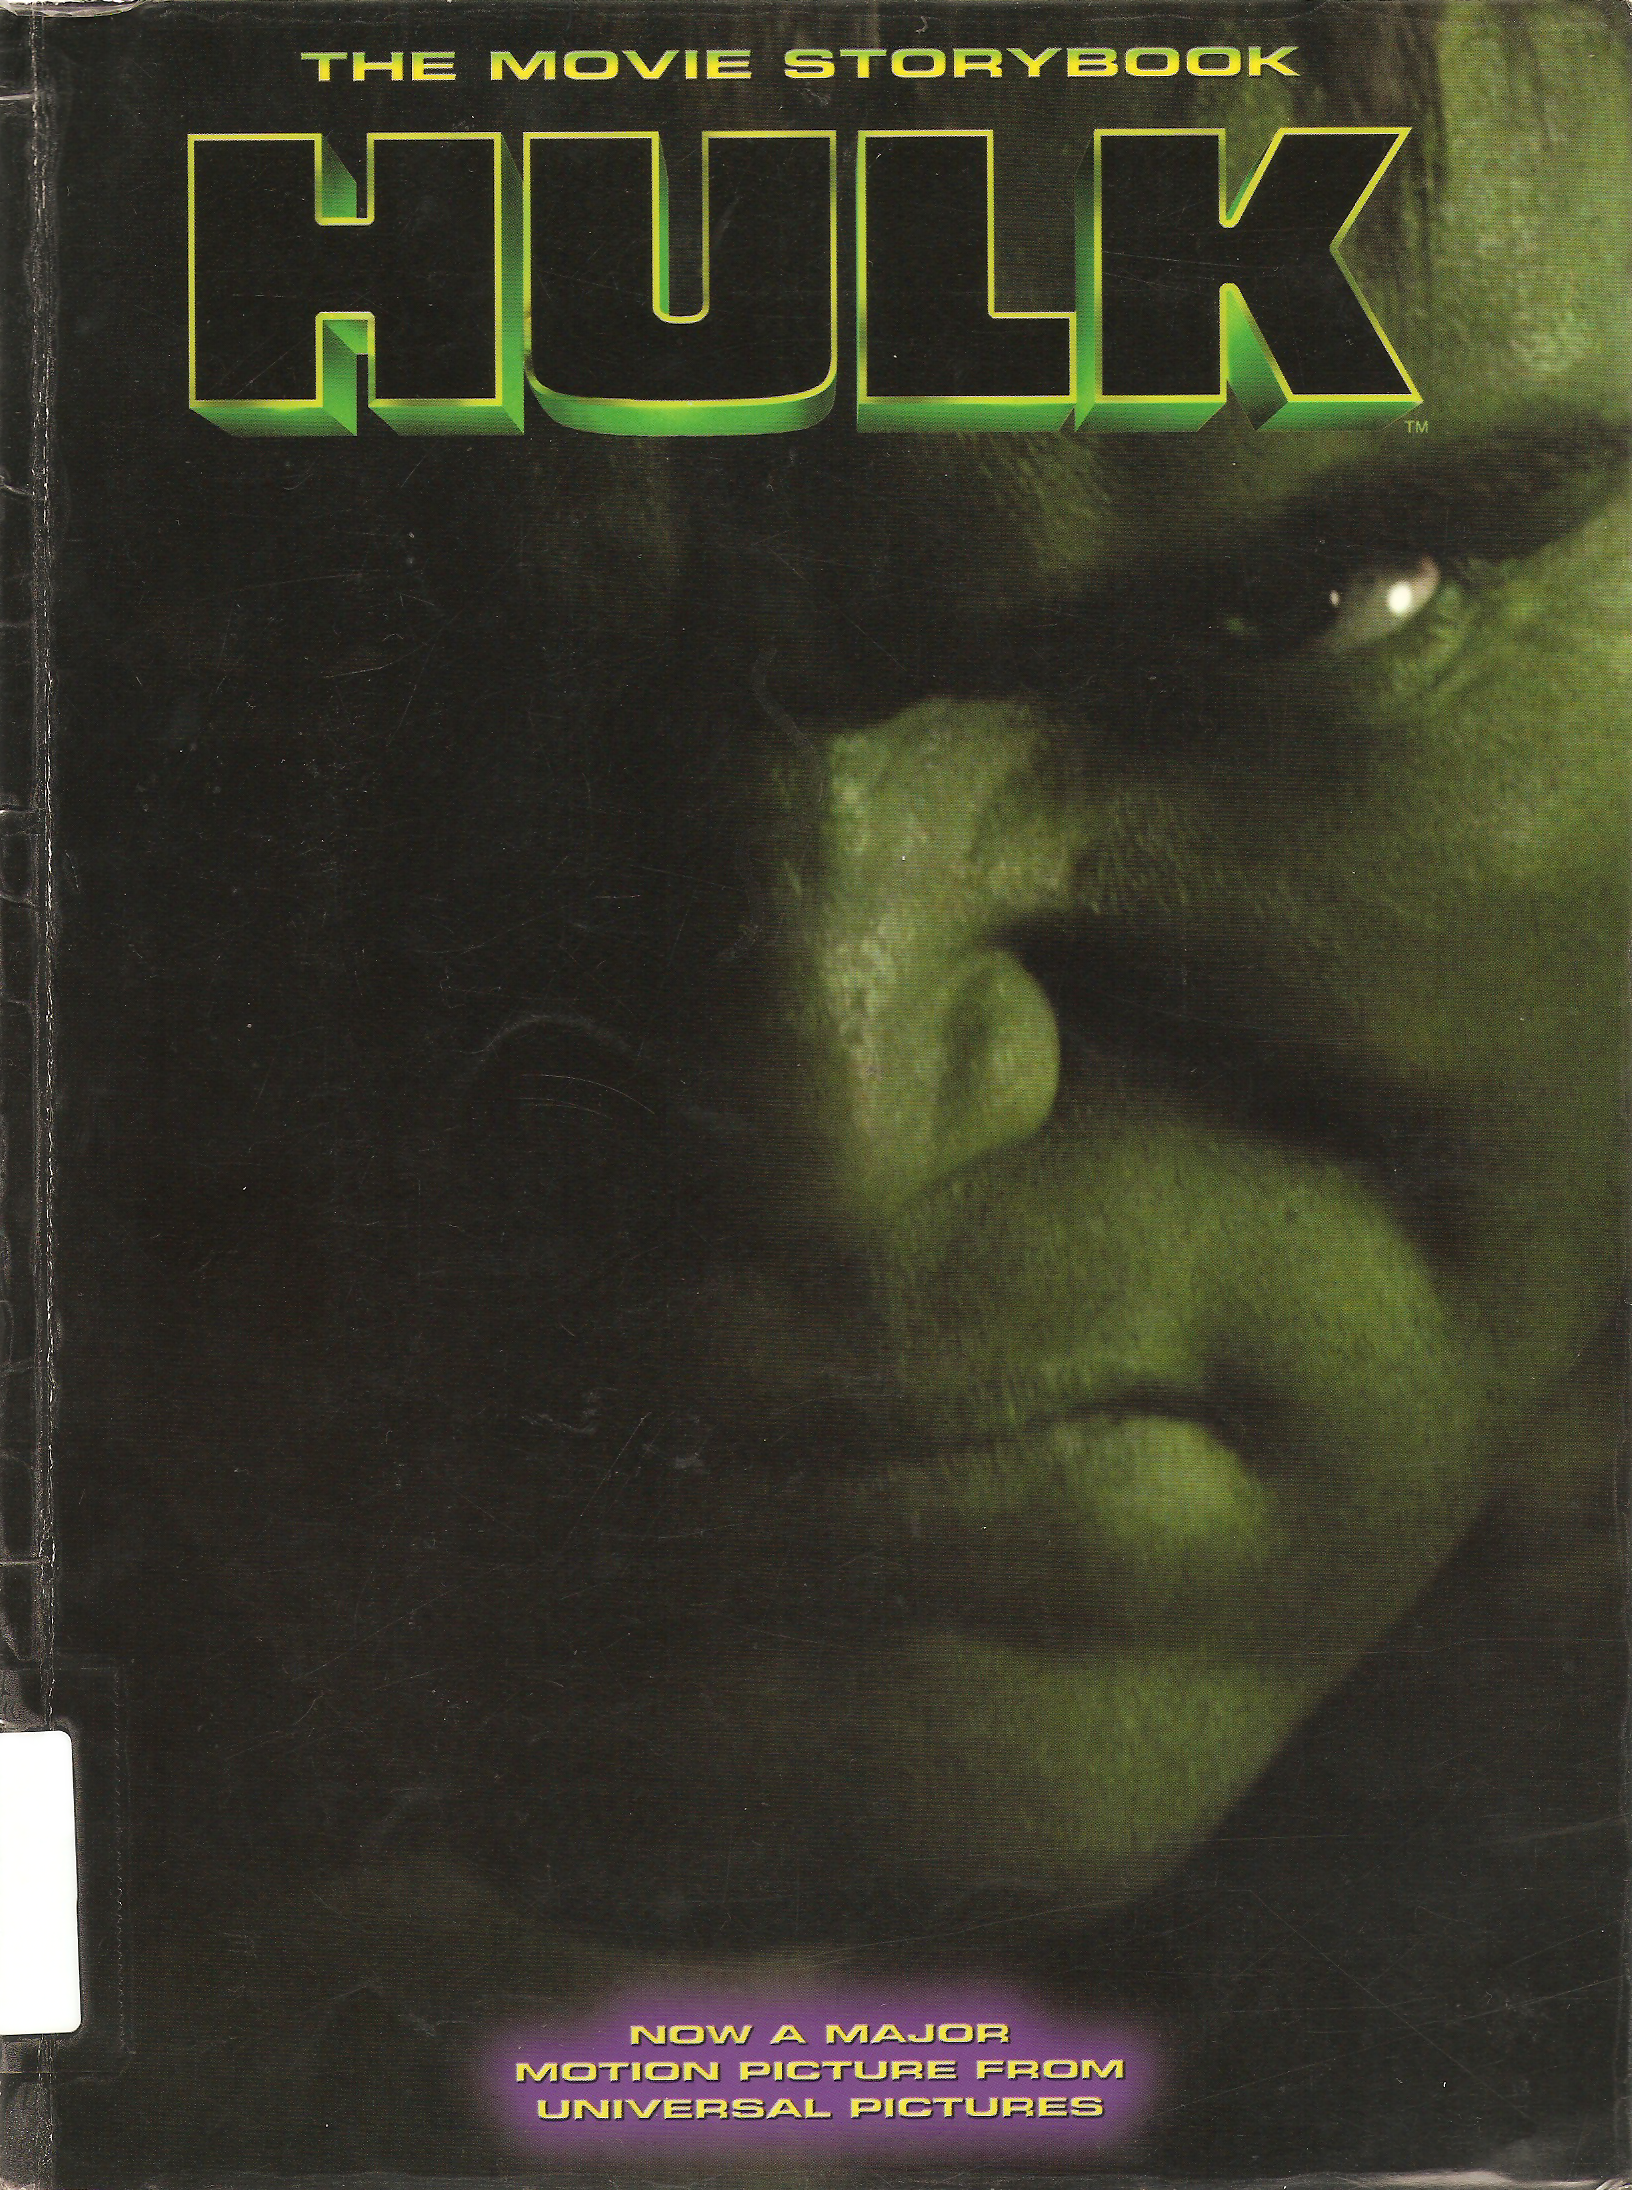 Hulk: The Movie Storybook